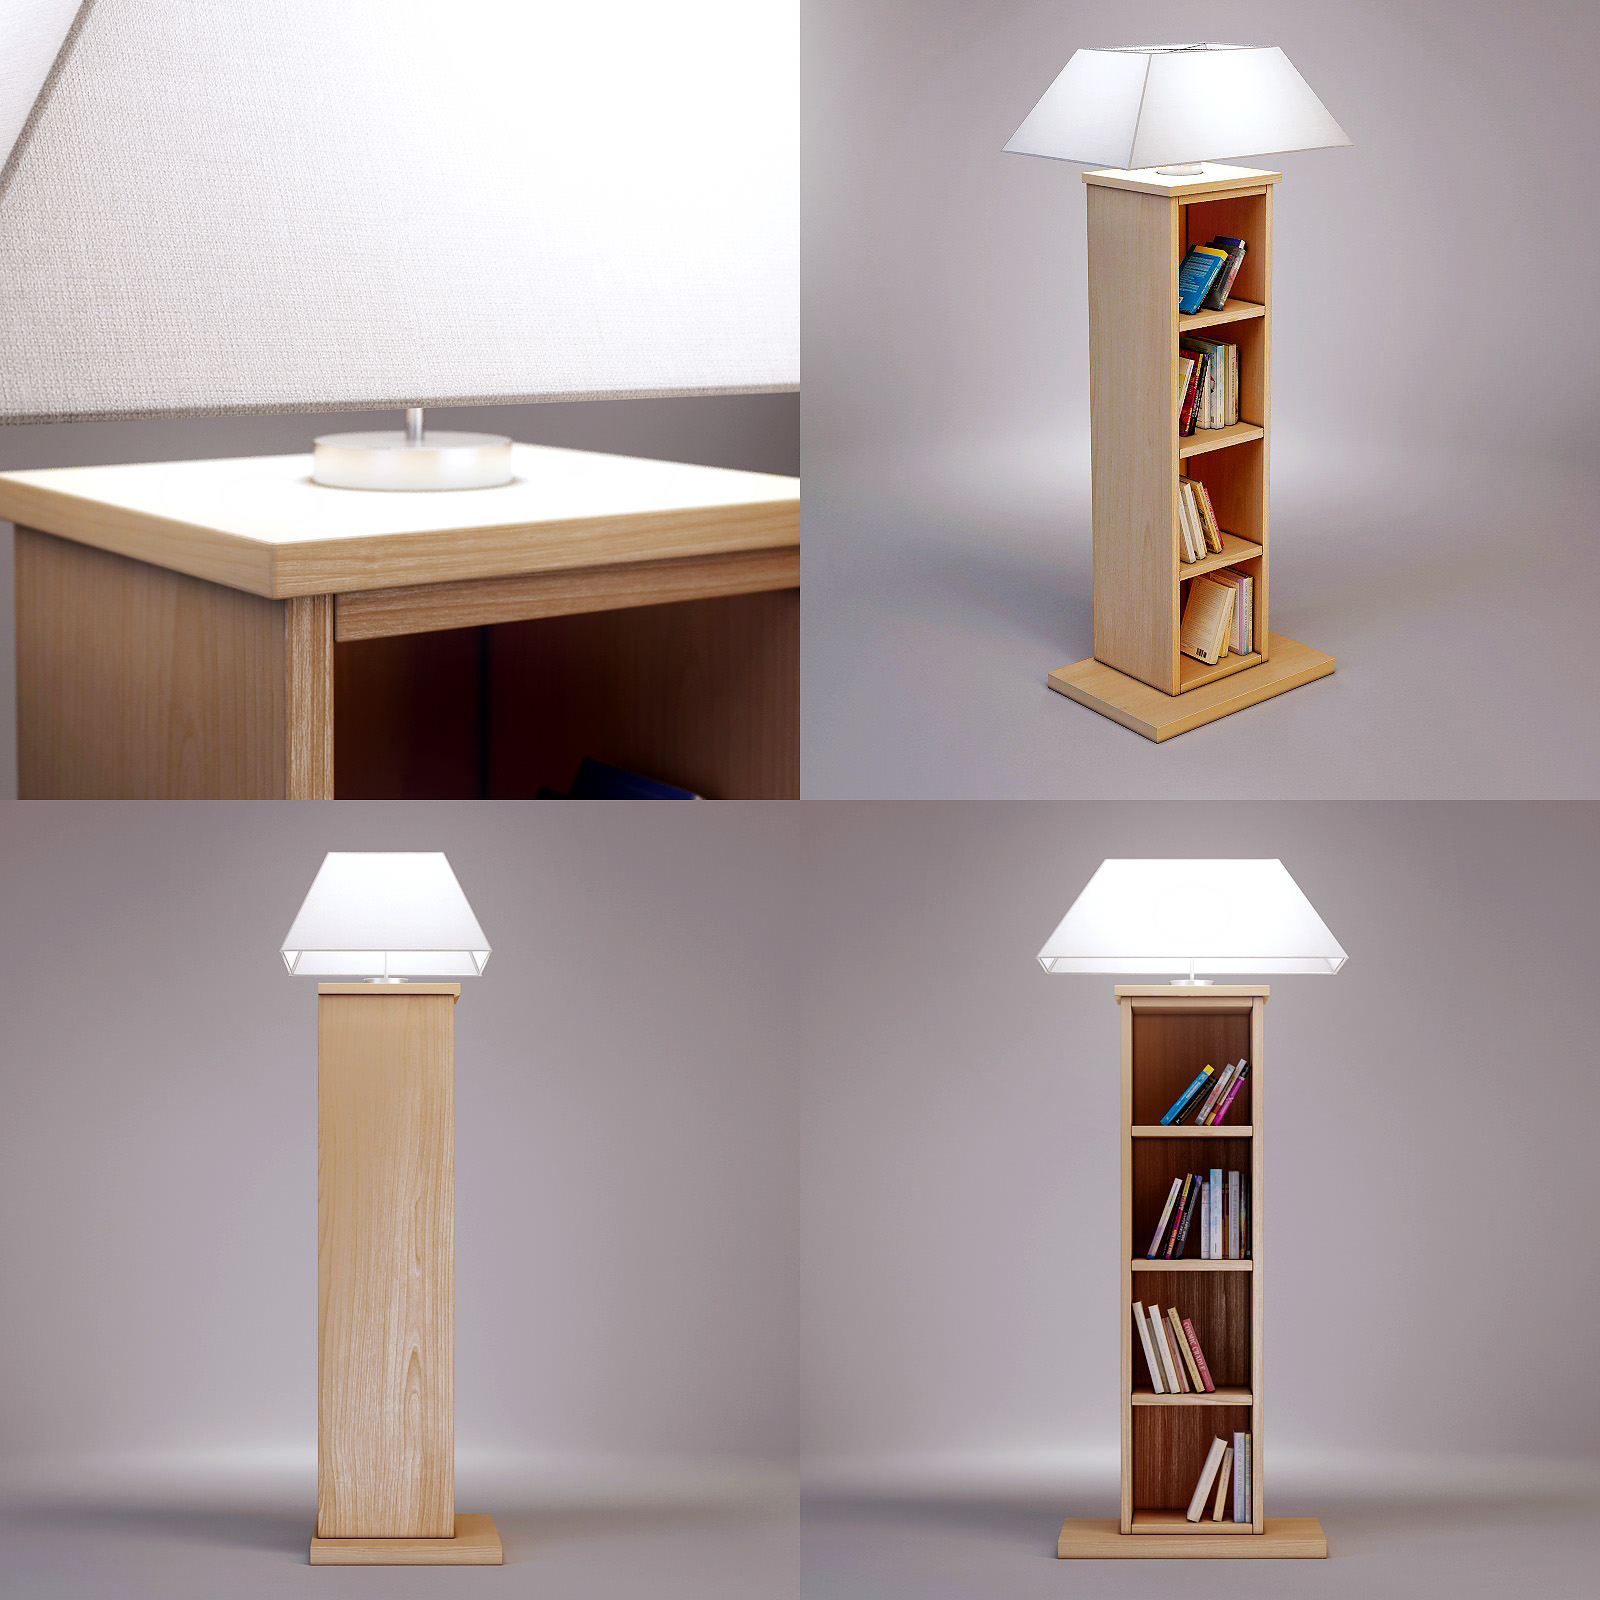 space above bookcase bookcases built bookshelves awkward pin in lighting with light an making useful